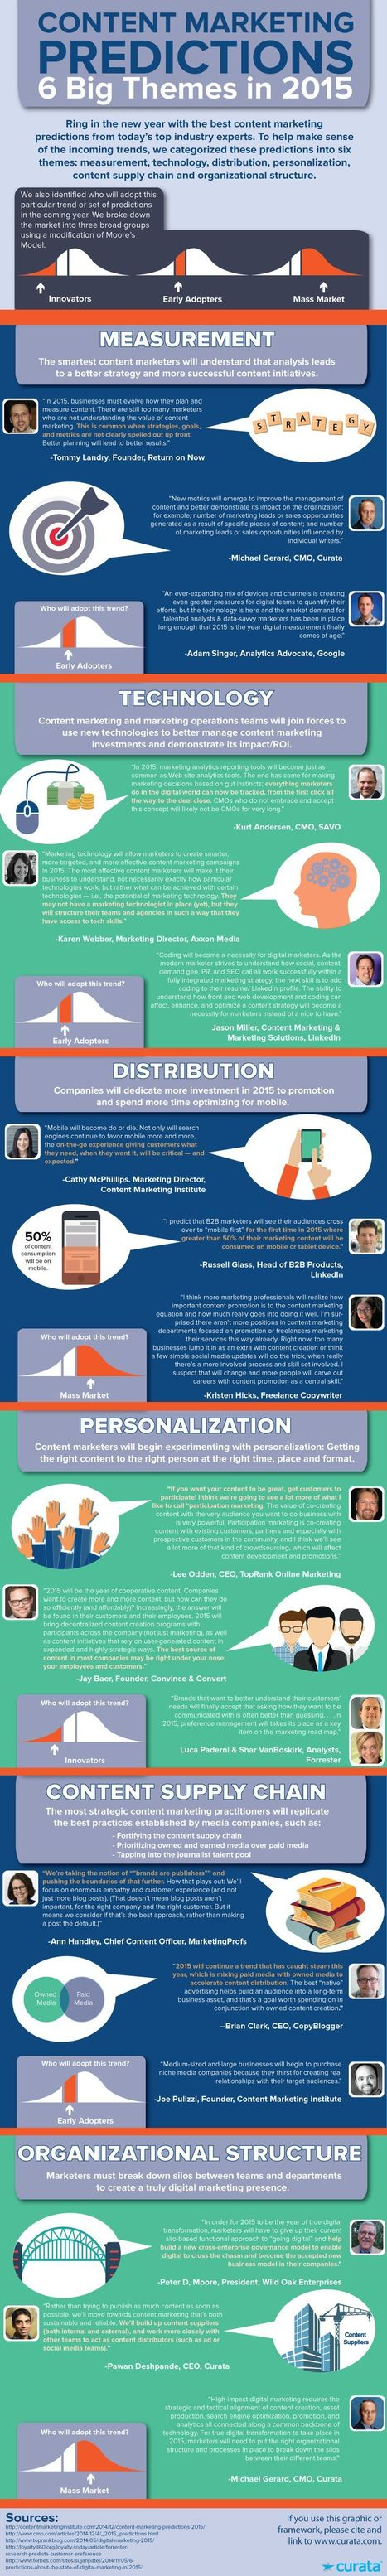 Content Marketing Predictions: 6 Big Themes for 2015 [Infographic] | Content Marketing Forum | Start-Up & Growth Hacking Tips | Scoop.it